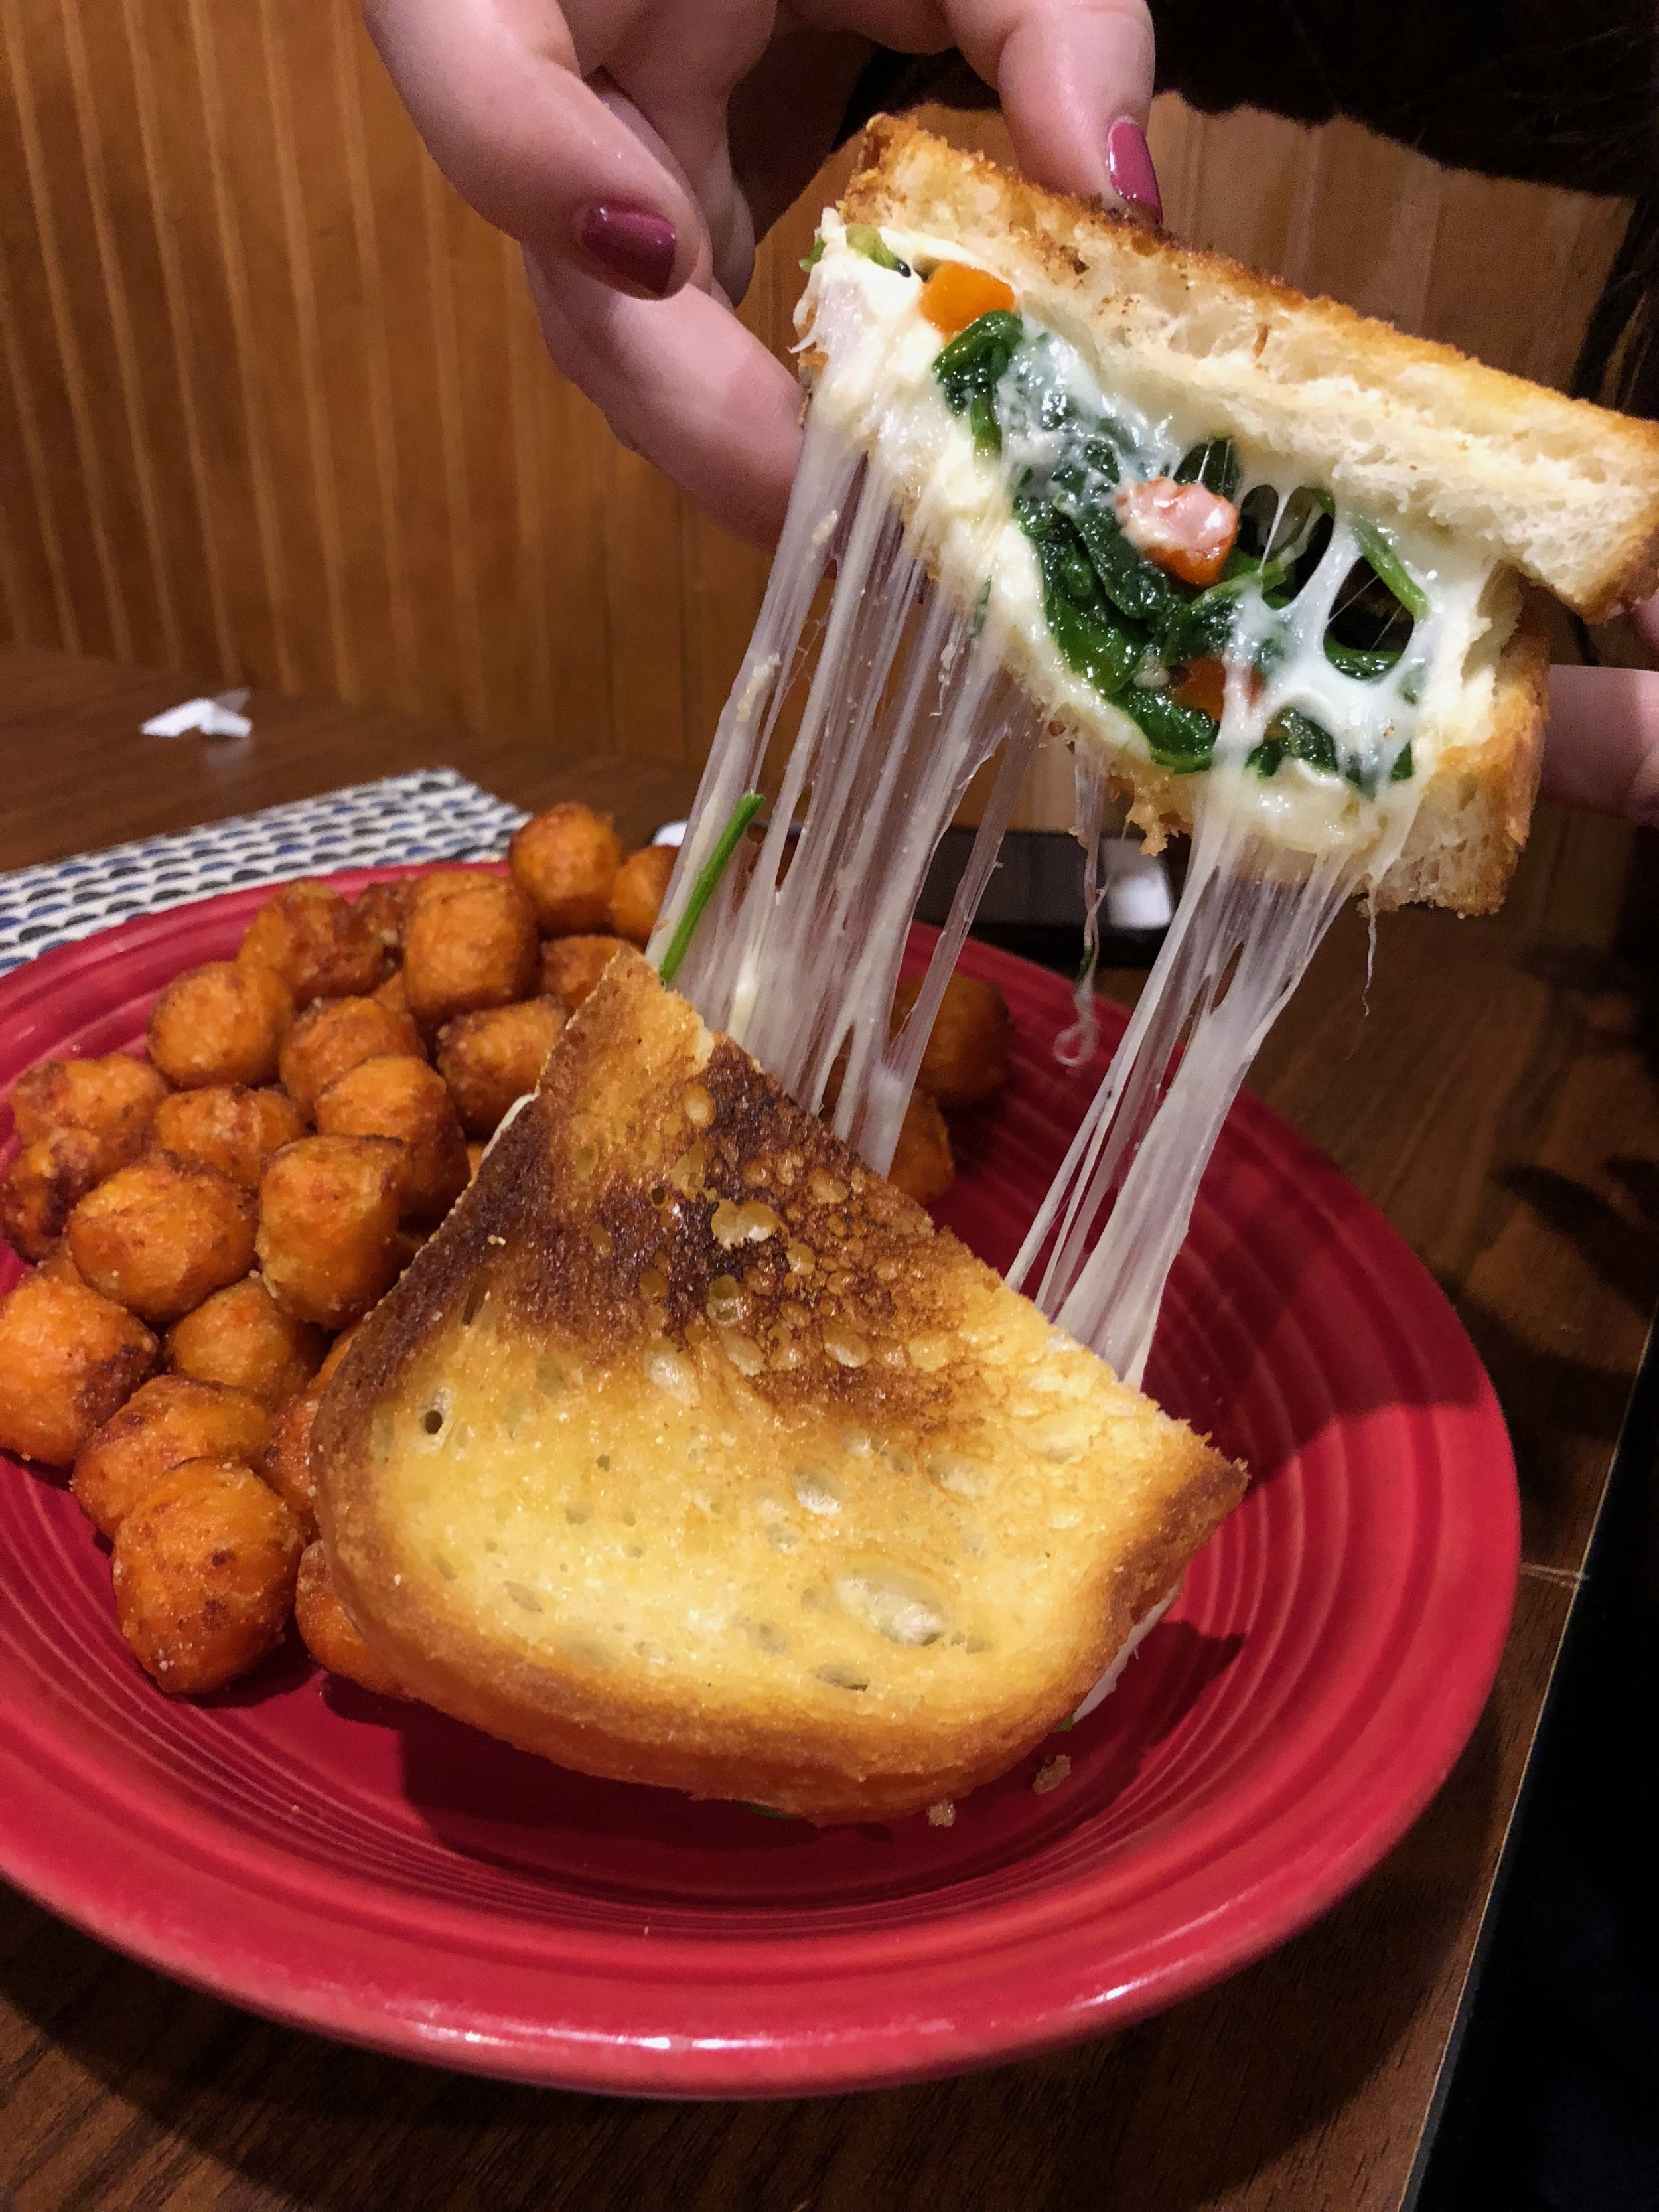 Crabby Grilled Cheese - A grilled cheese sandwich with a crab cake, wilted garlic spinach, roasted red peppers, and provolone cheese with sweet potato tots